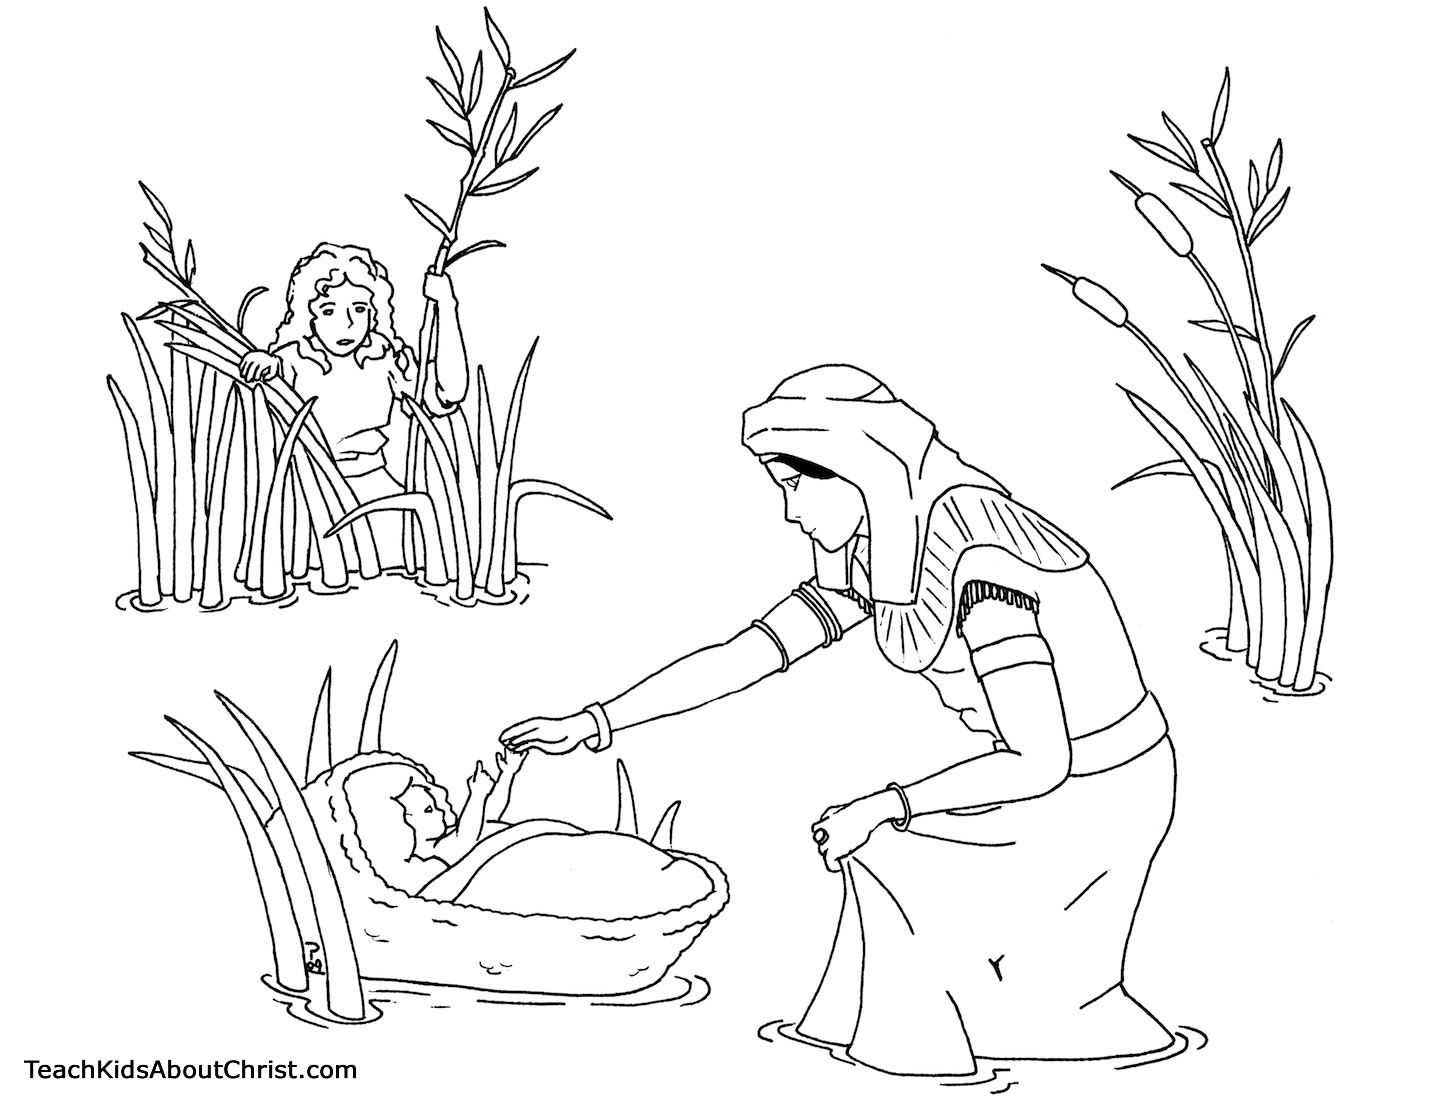 coloring moses in a basket pin on religious coloring pages a basket moses coloring in